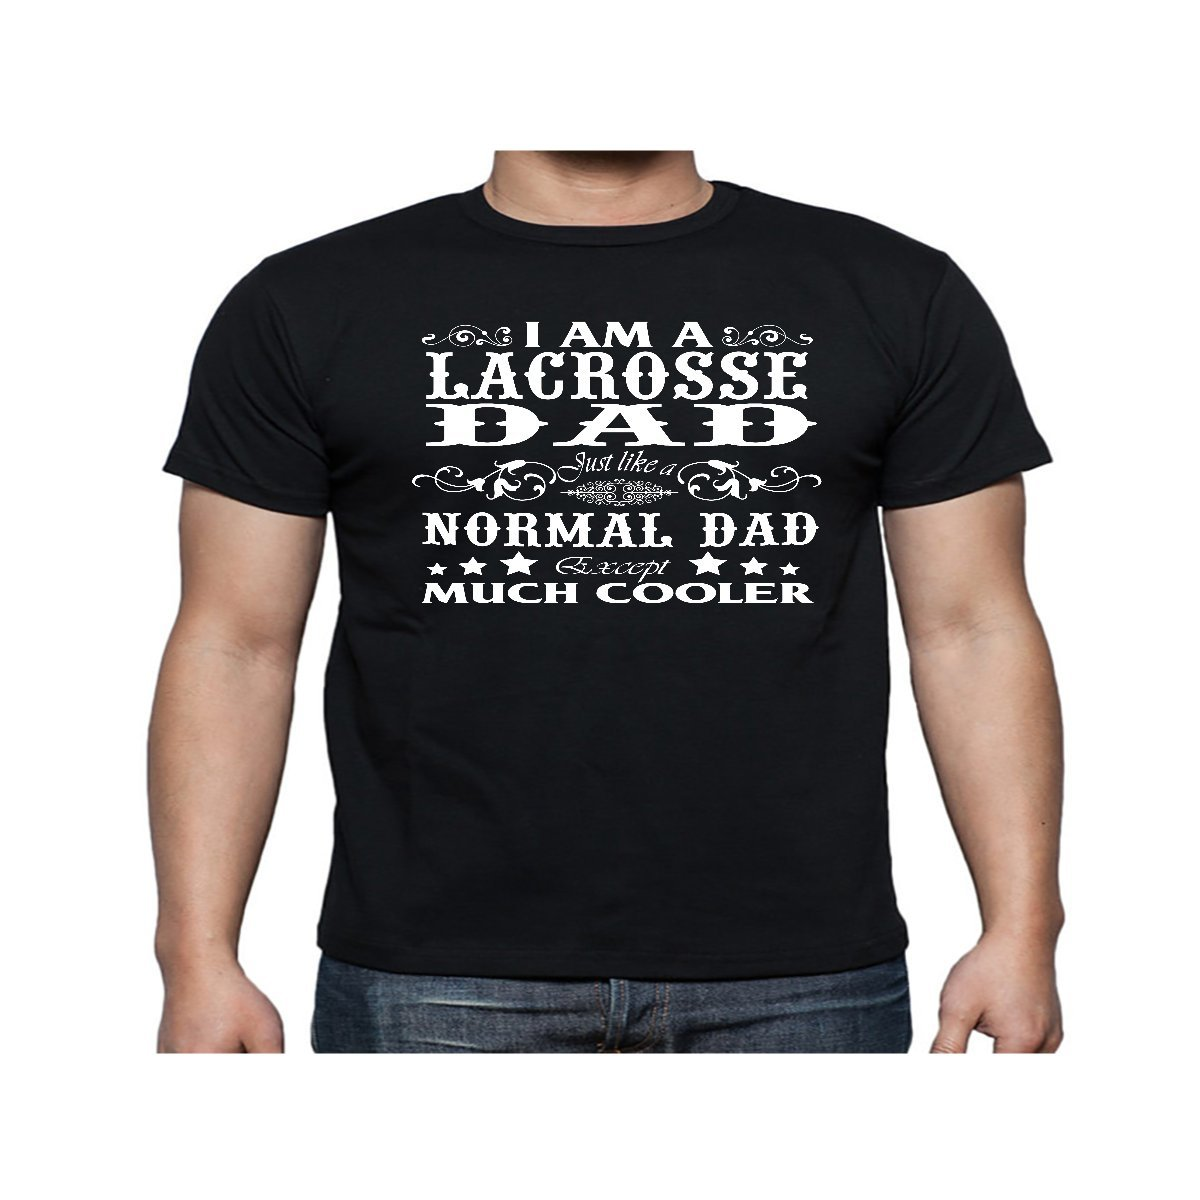 7e799c34 Amazon.com: Men's I Am A Lacrosse Dad Just Like A Normal Dad Shirt - Tshirt:  Clothing